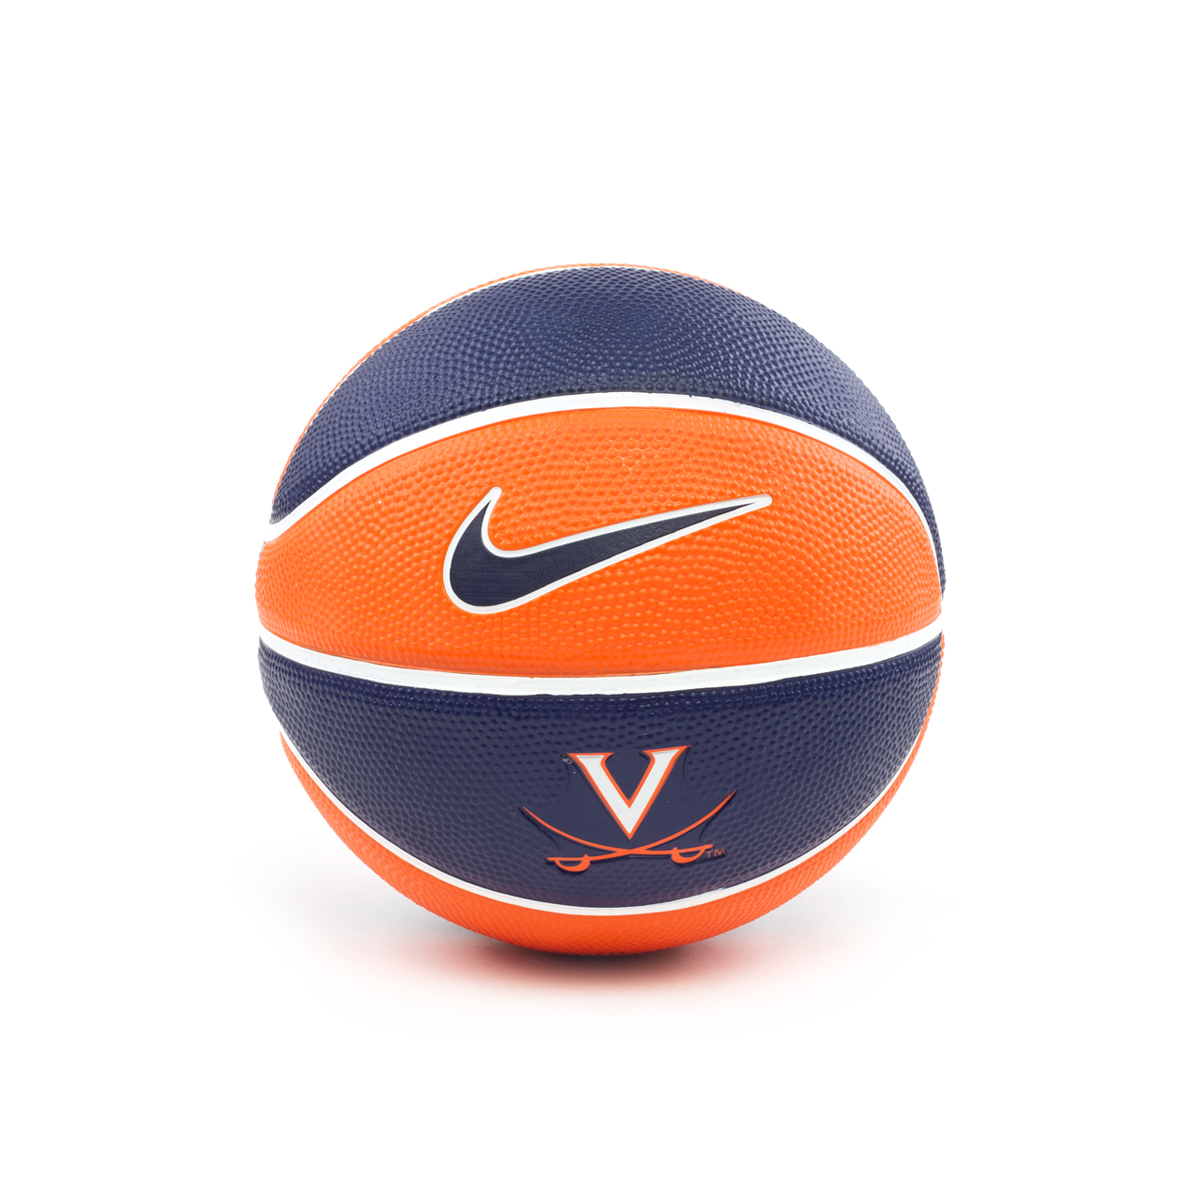 University of Virginia Training Basketball - Size 3